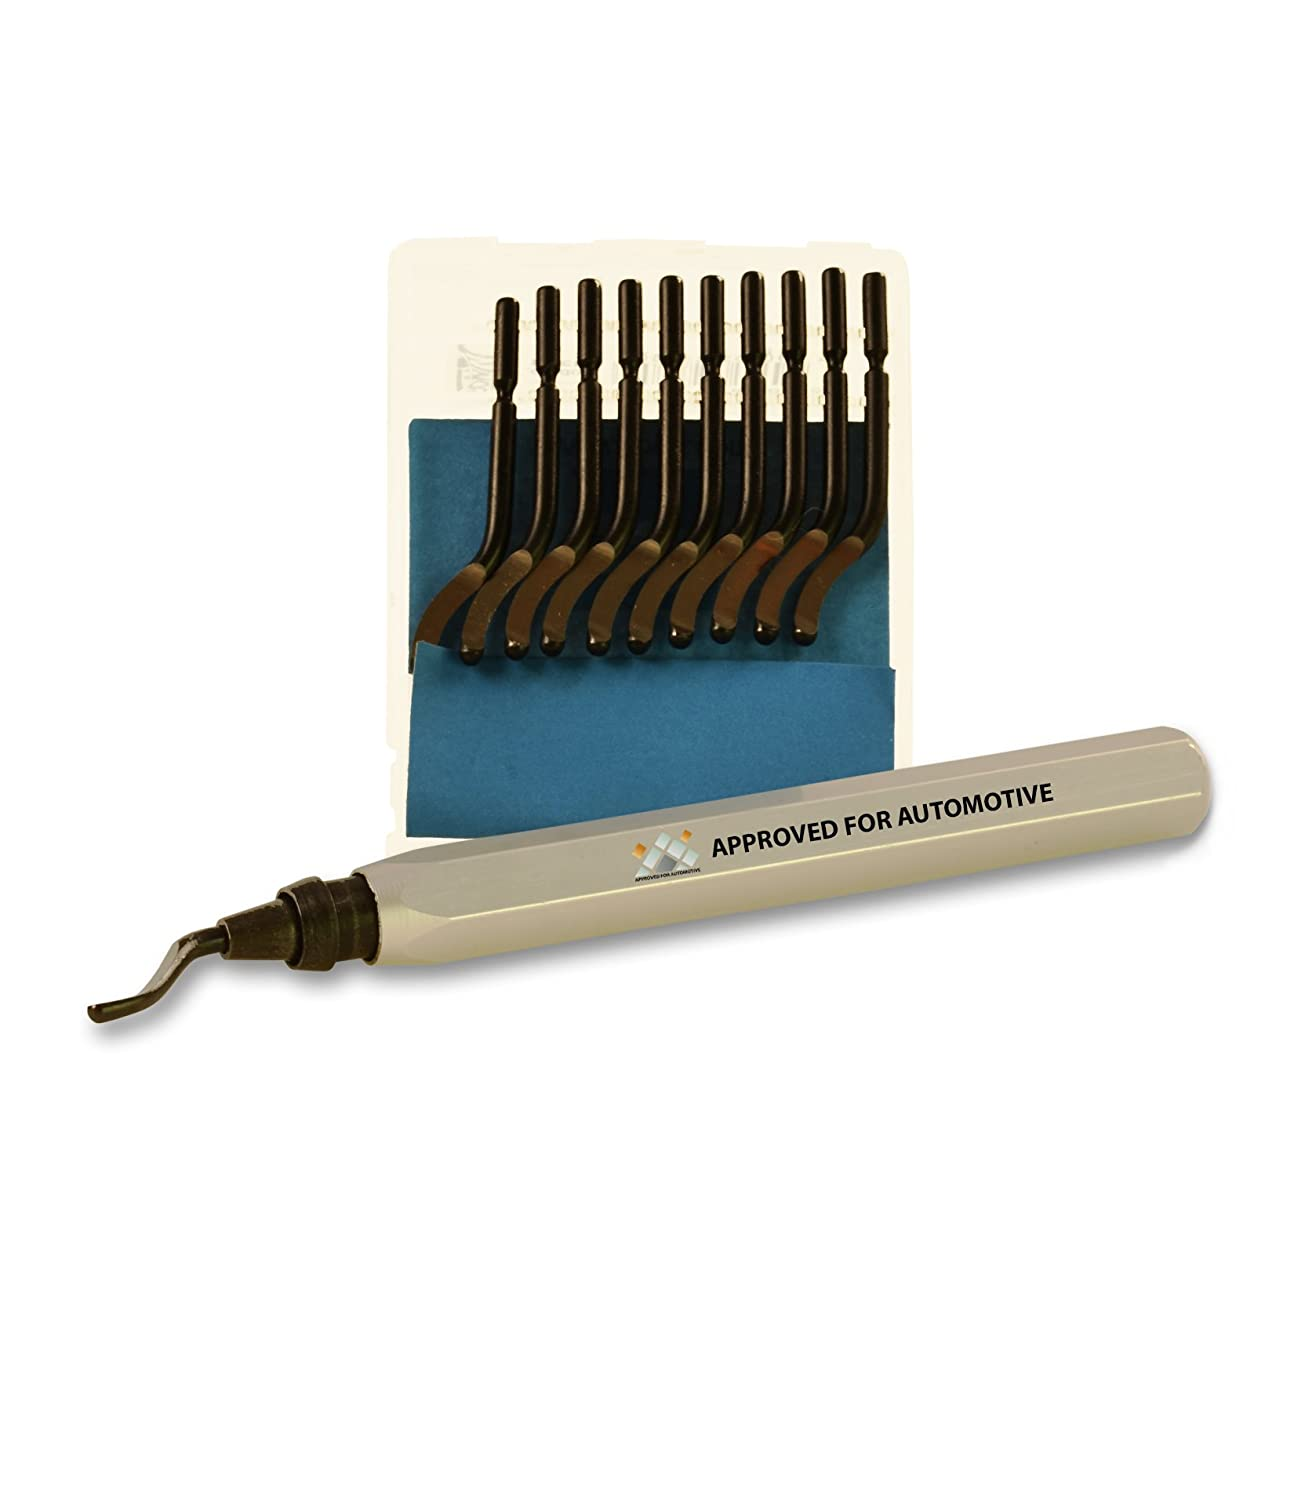 Approved for Automotive Deburring Tool w/Blade + 10 Extra Blades + Tungsten Carbide Scribe